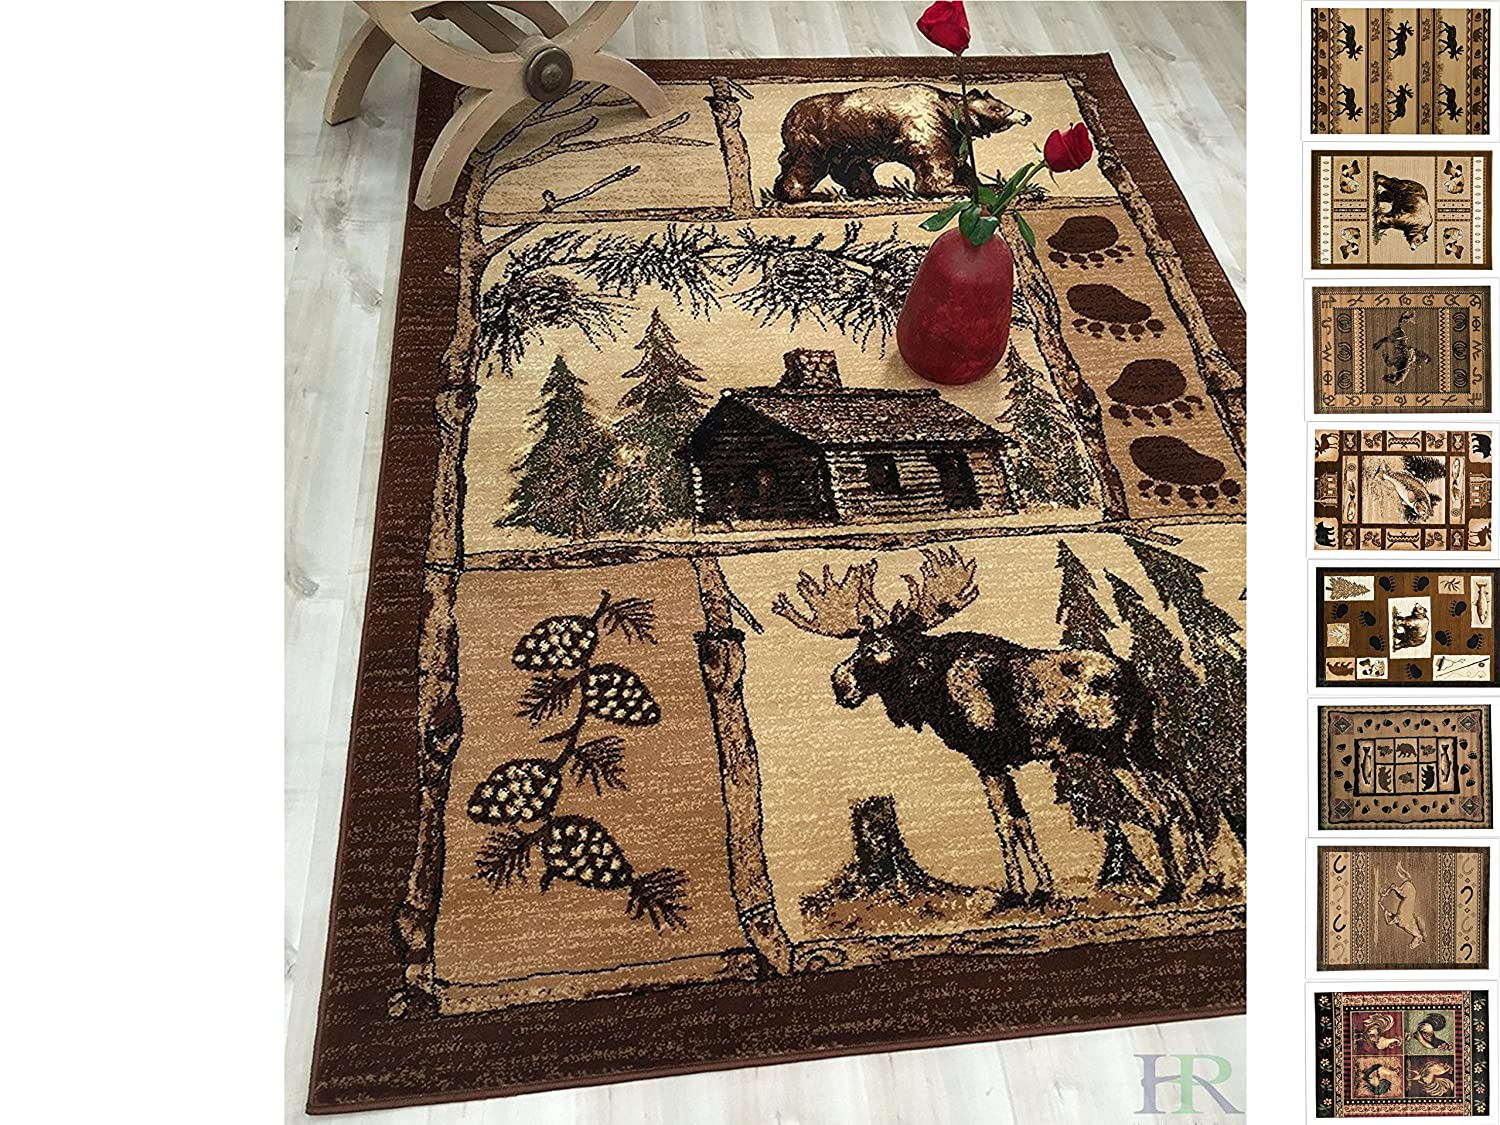 Handcraft Rugs Cabin Rug – Lodge, Cabin Nature and Animals Area Rug – Modern Geometric Design Cabin Area Rug – Abstract, Multicolor Design– Moose/Bear/Lodge/Nature (5x7 feet)